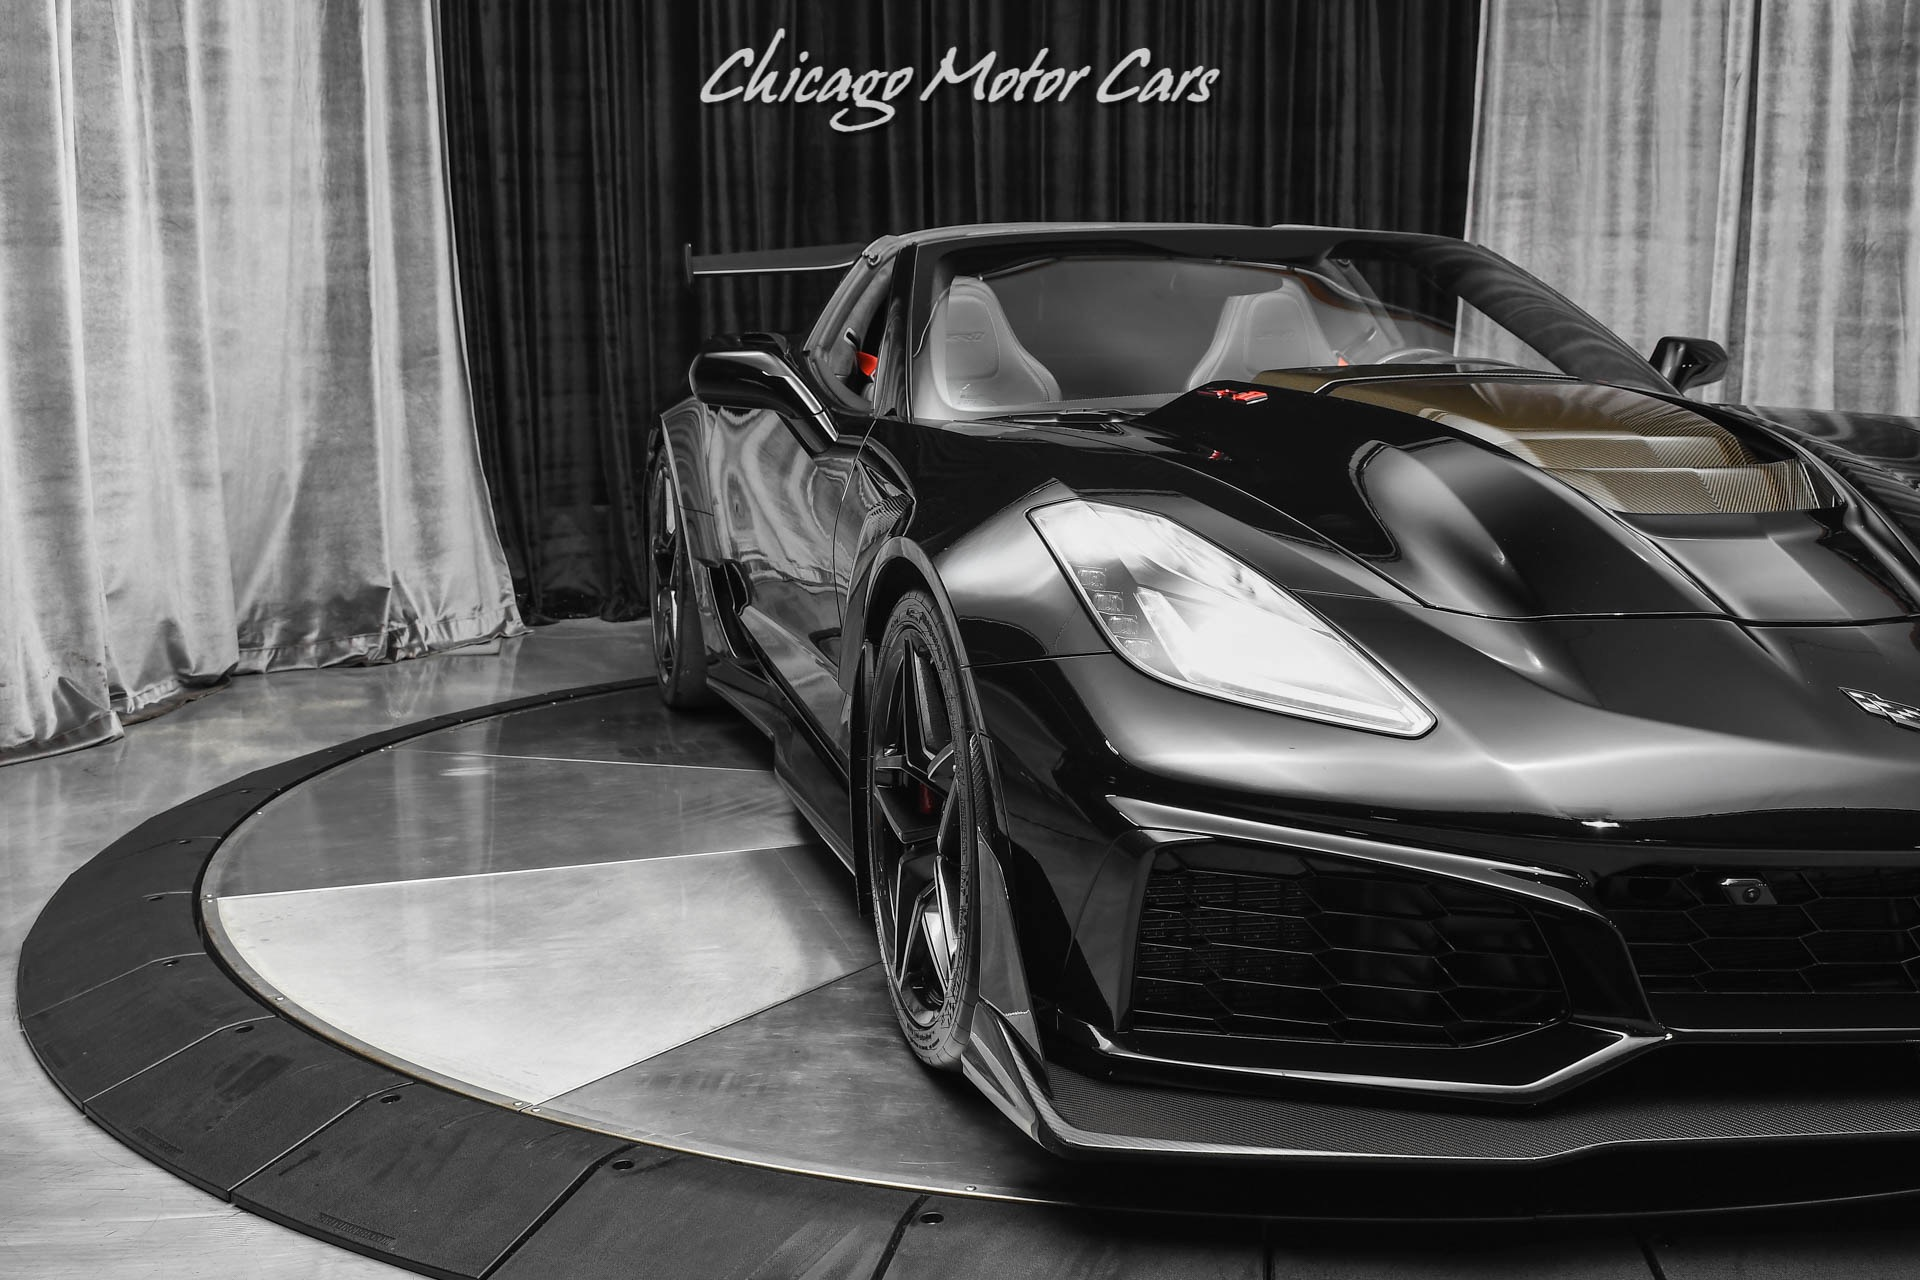 Used-2019-Chevrolet-Corvette-ZR1-3ZR-Coupe-Blacked-Out-Only-8K-Miles